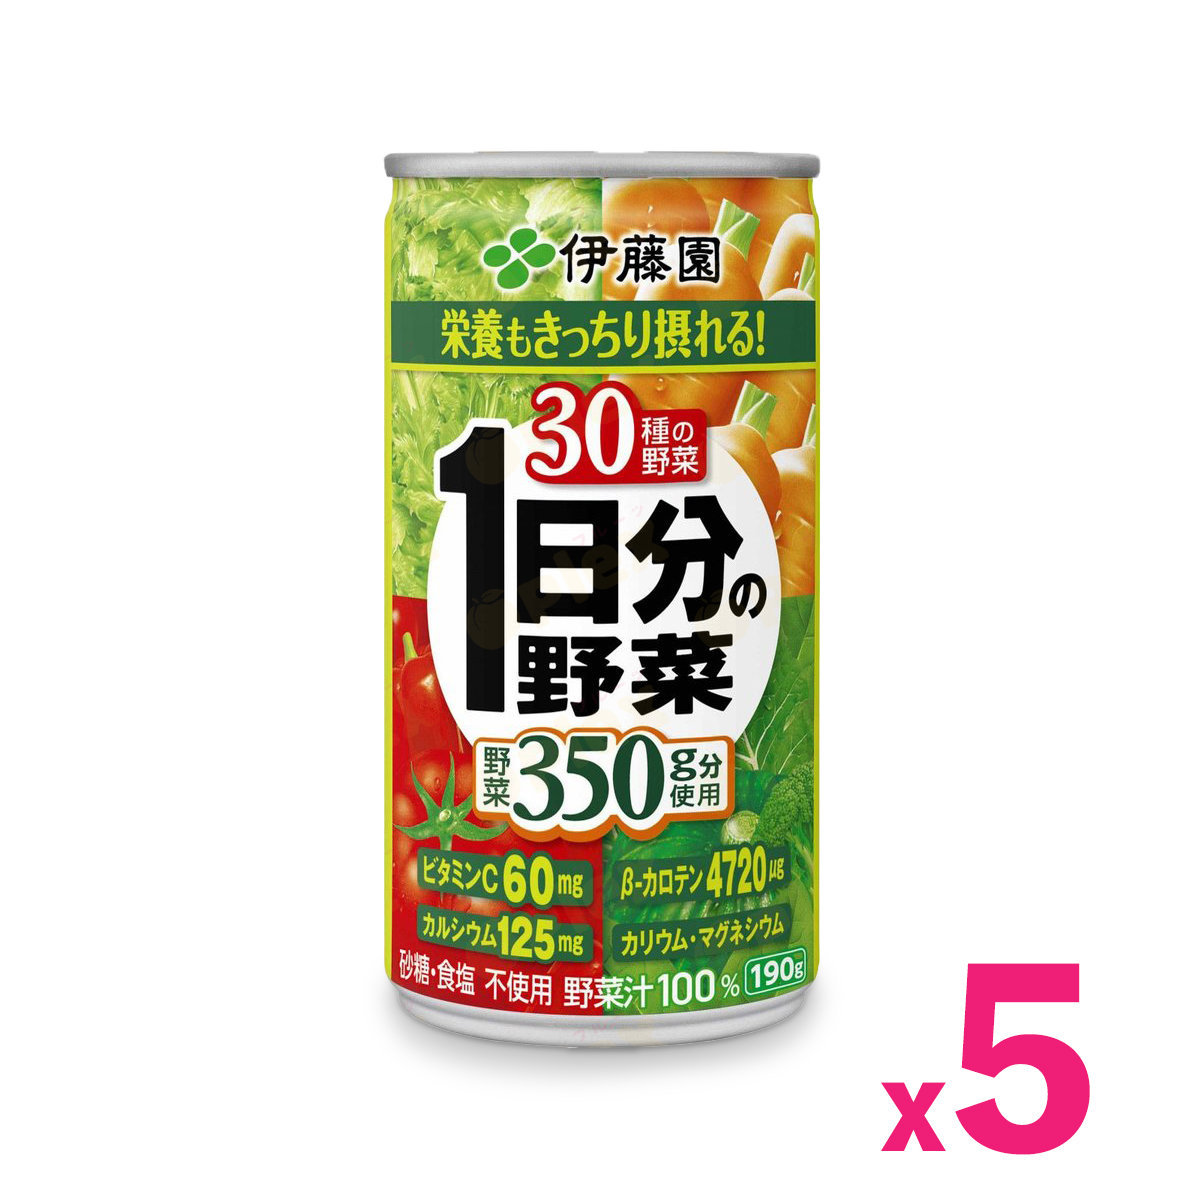 Daily Vegetables Juice (190ml) x 5cans